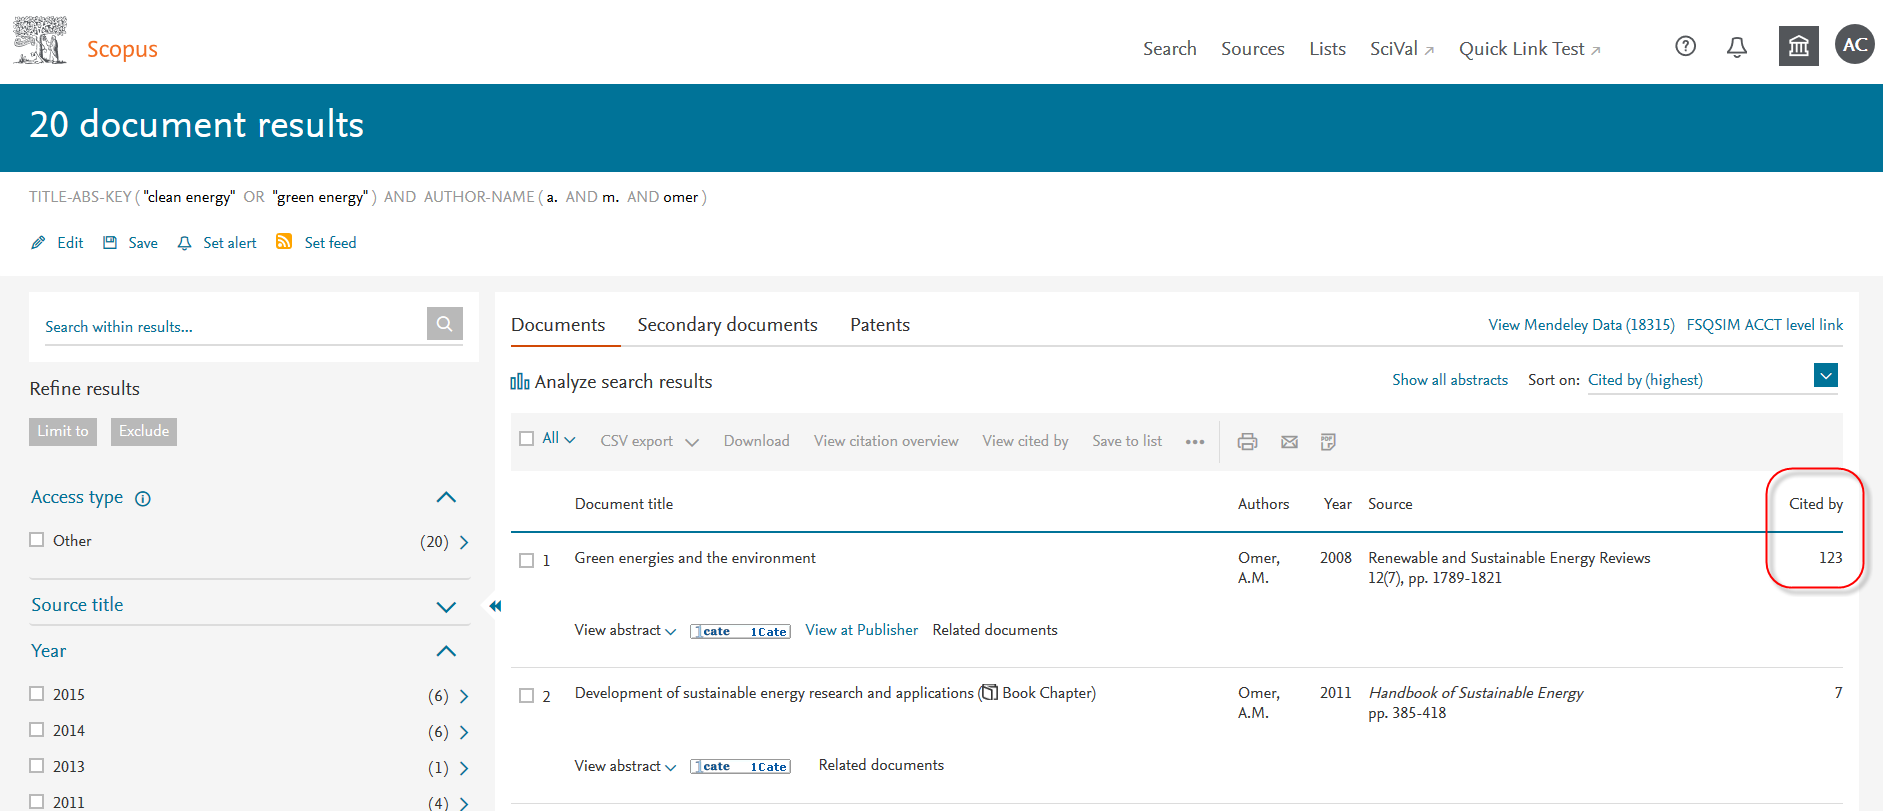 Scopus Search Results with Cited By column highlighted